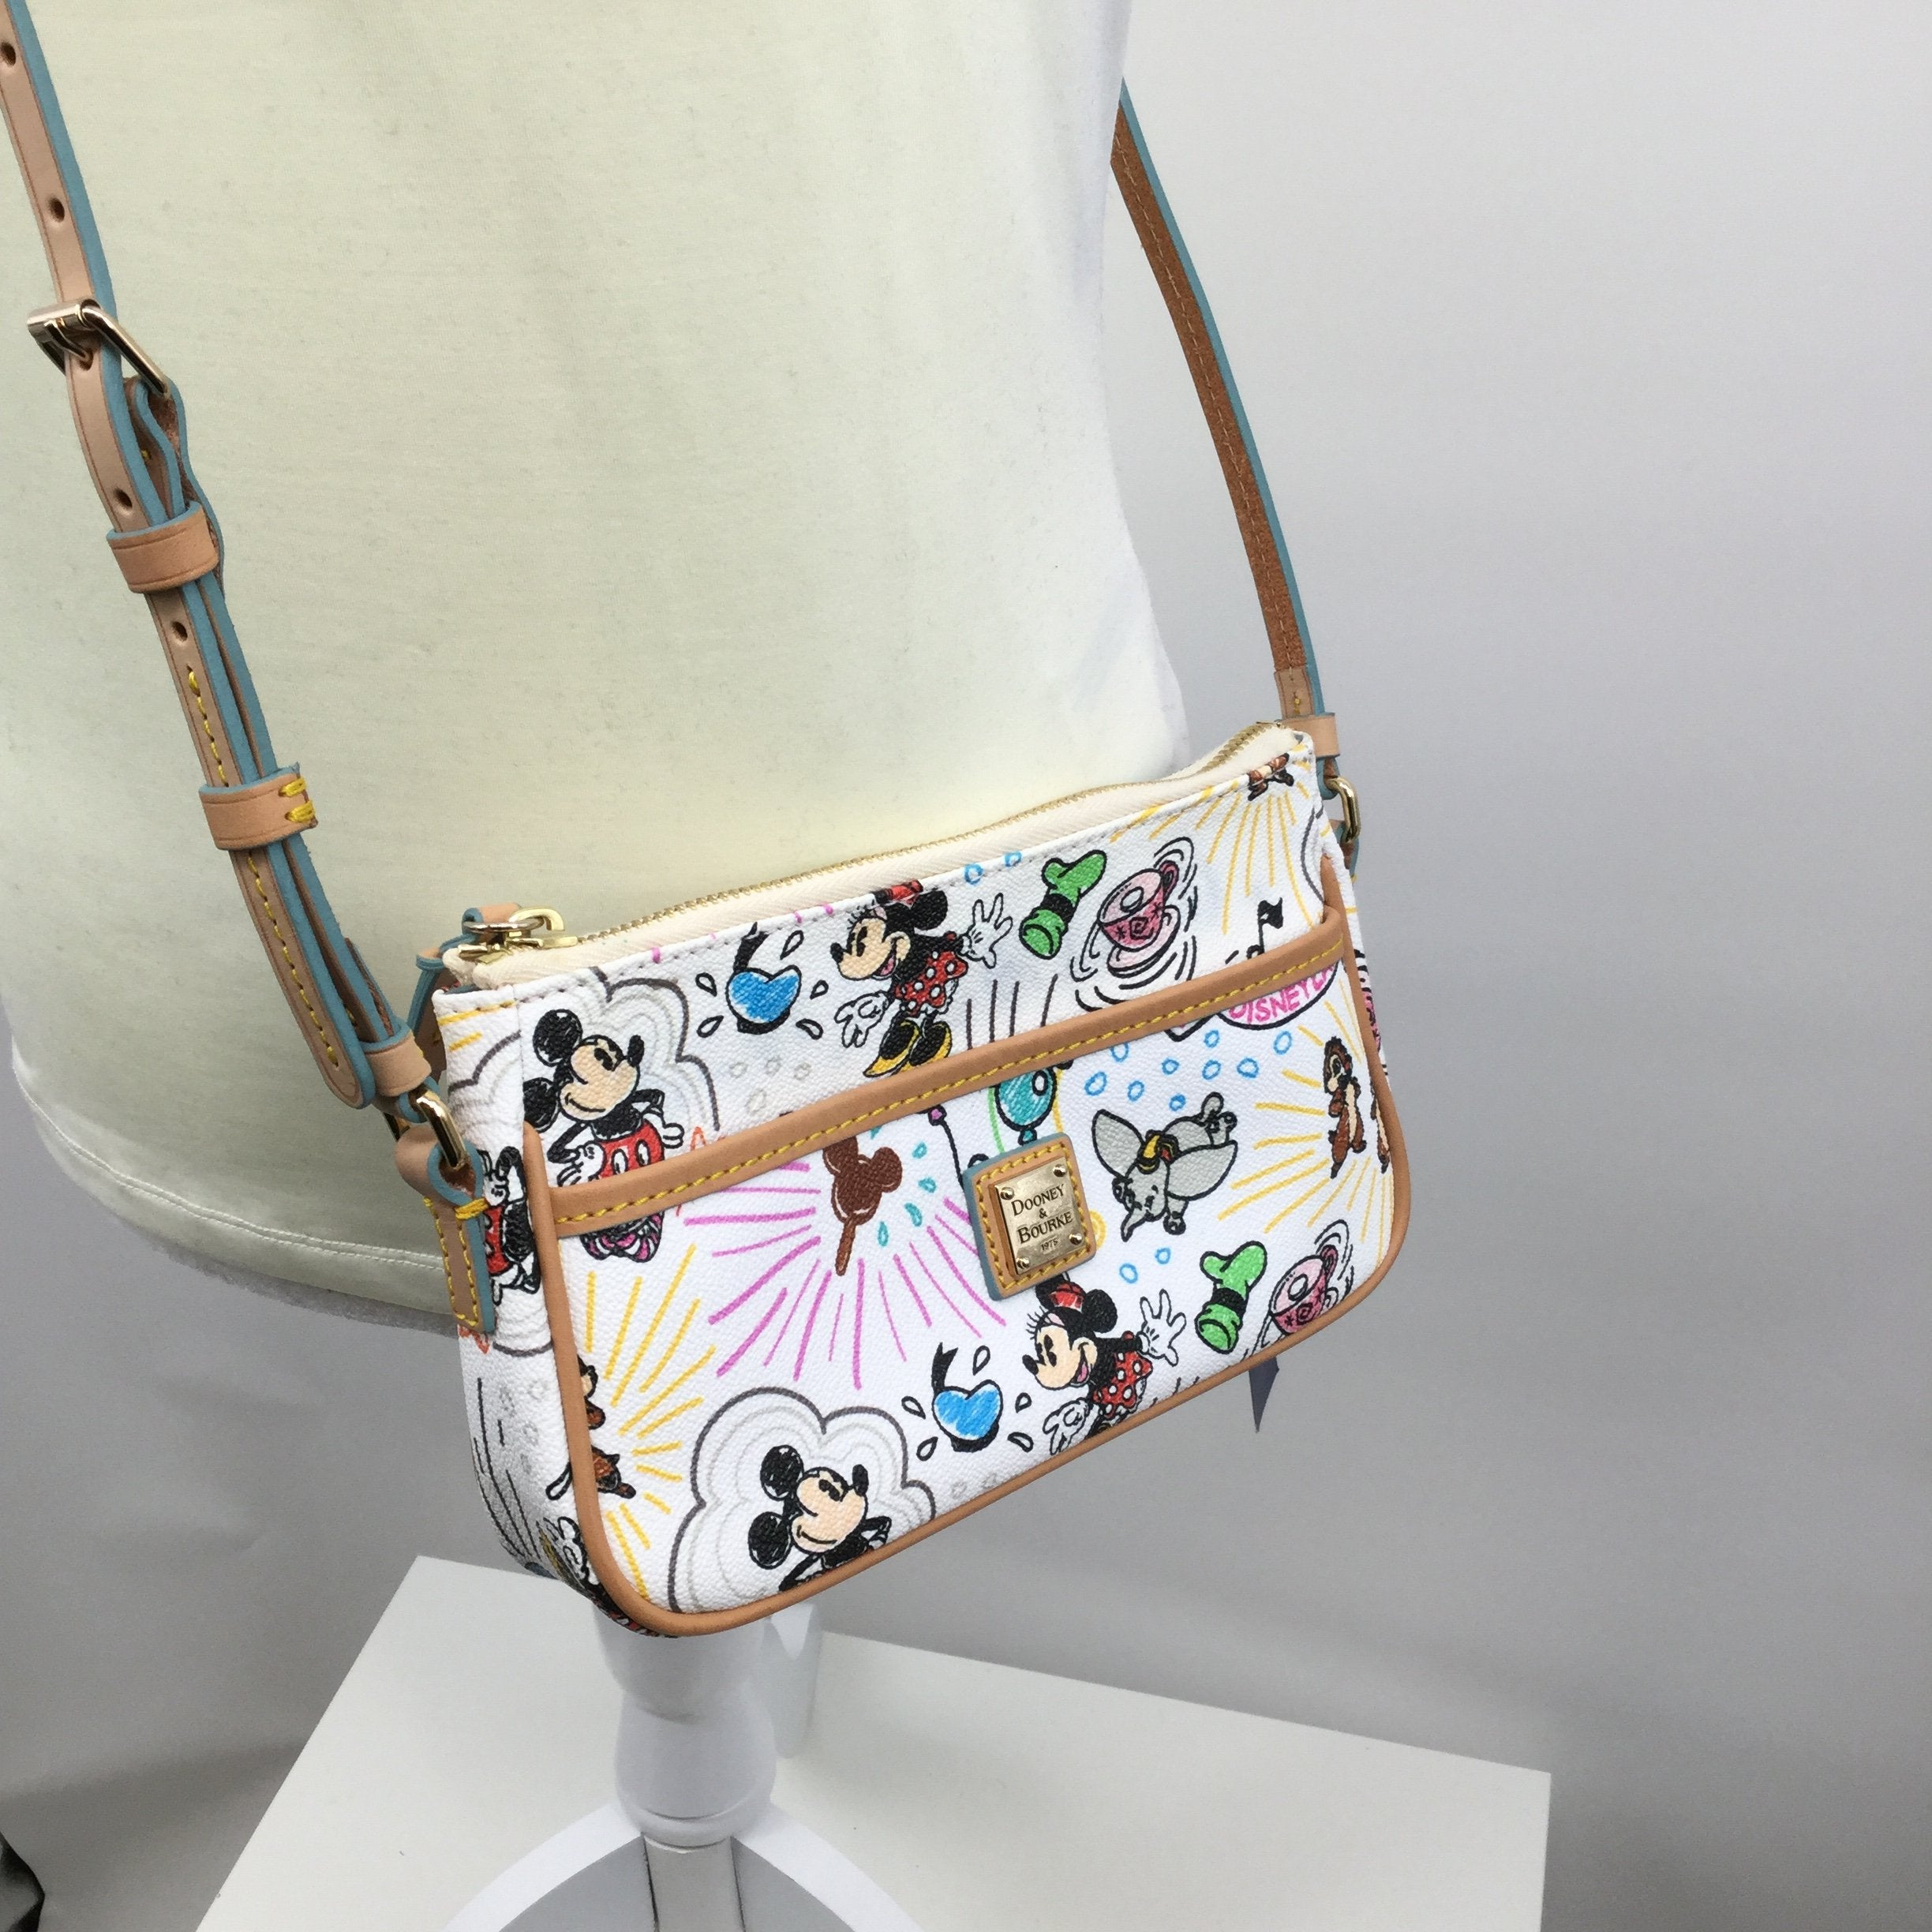 DOONEY AND BOURKE HANDBAG DESIGNER SIZE:SMALL - <P>NEW WITH TAGS DISNEY DOONEY AND BOURKE CROSSBODY!!! ADJUSTIBLE STRAP. MEASURES APPROX. 9